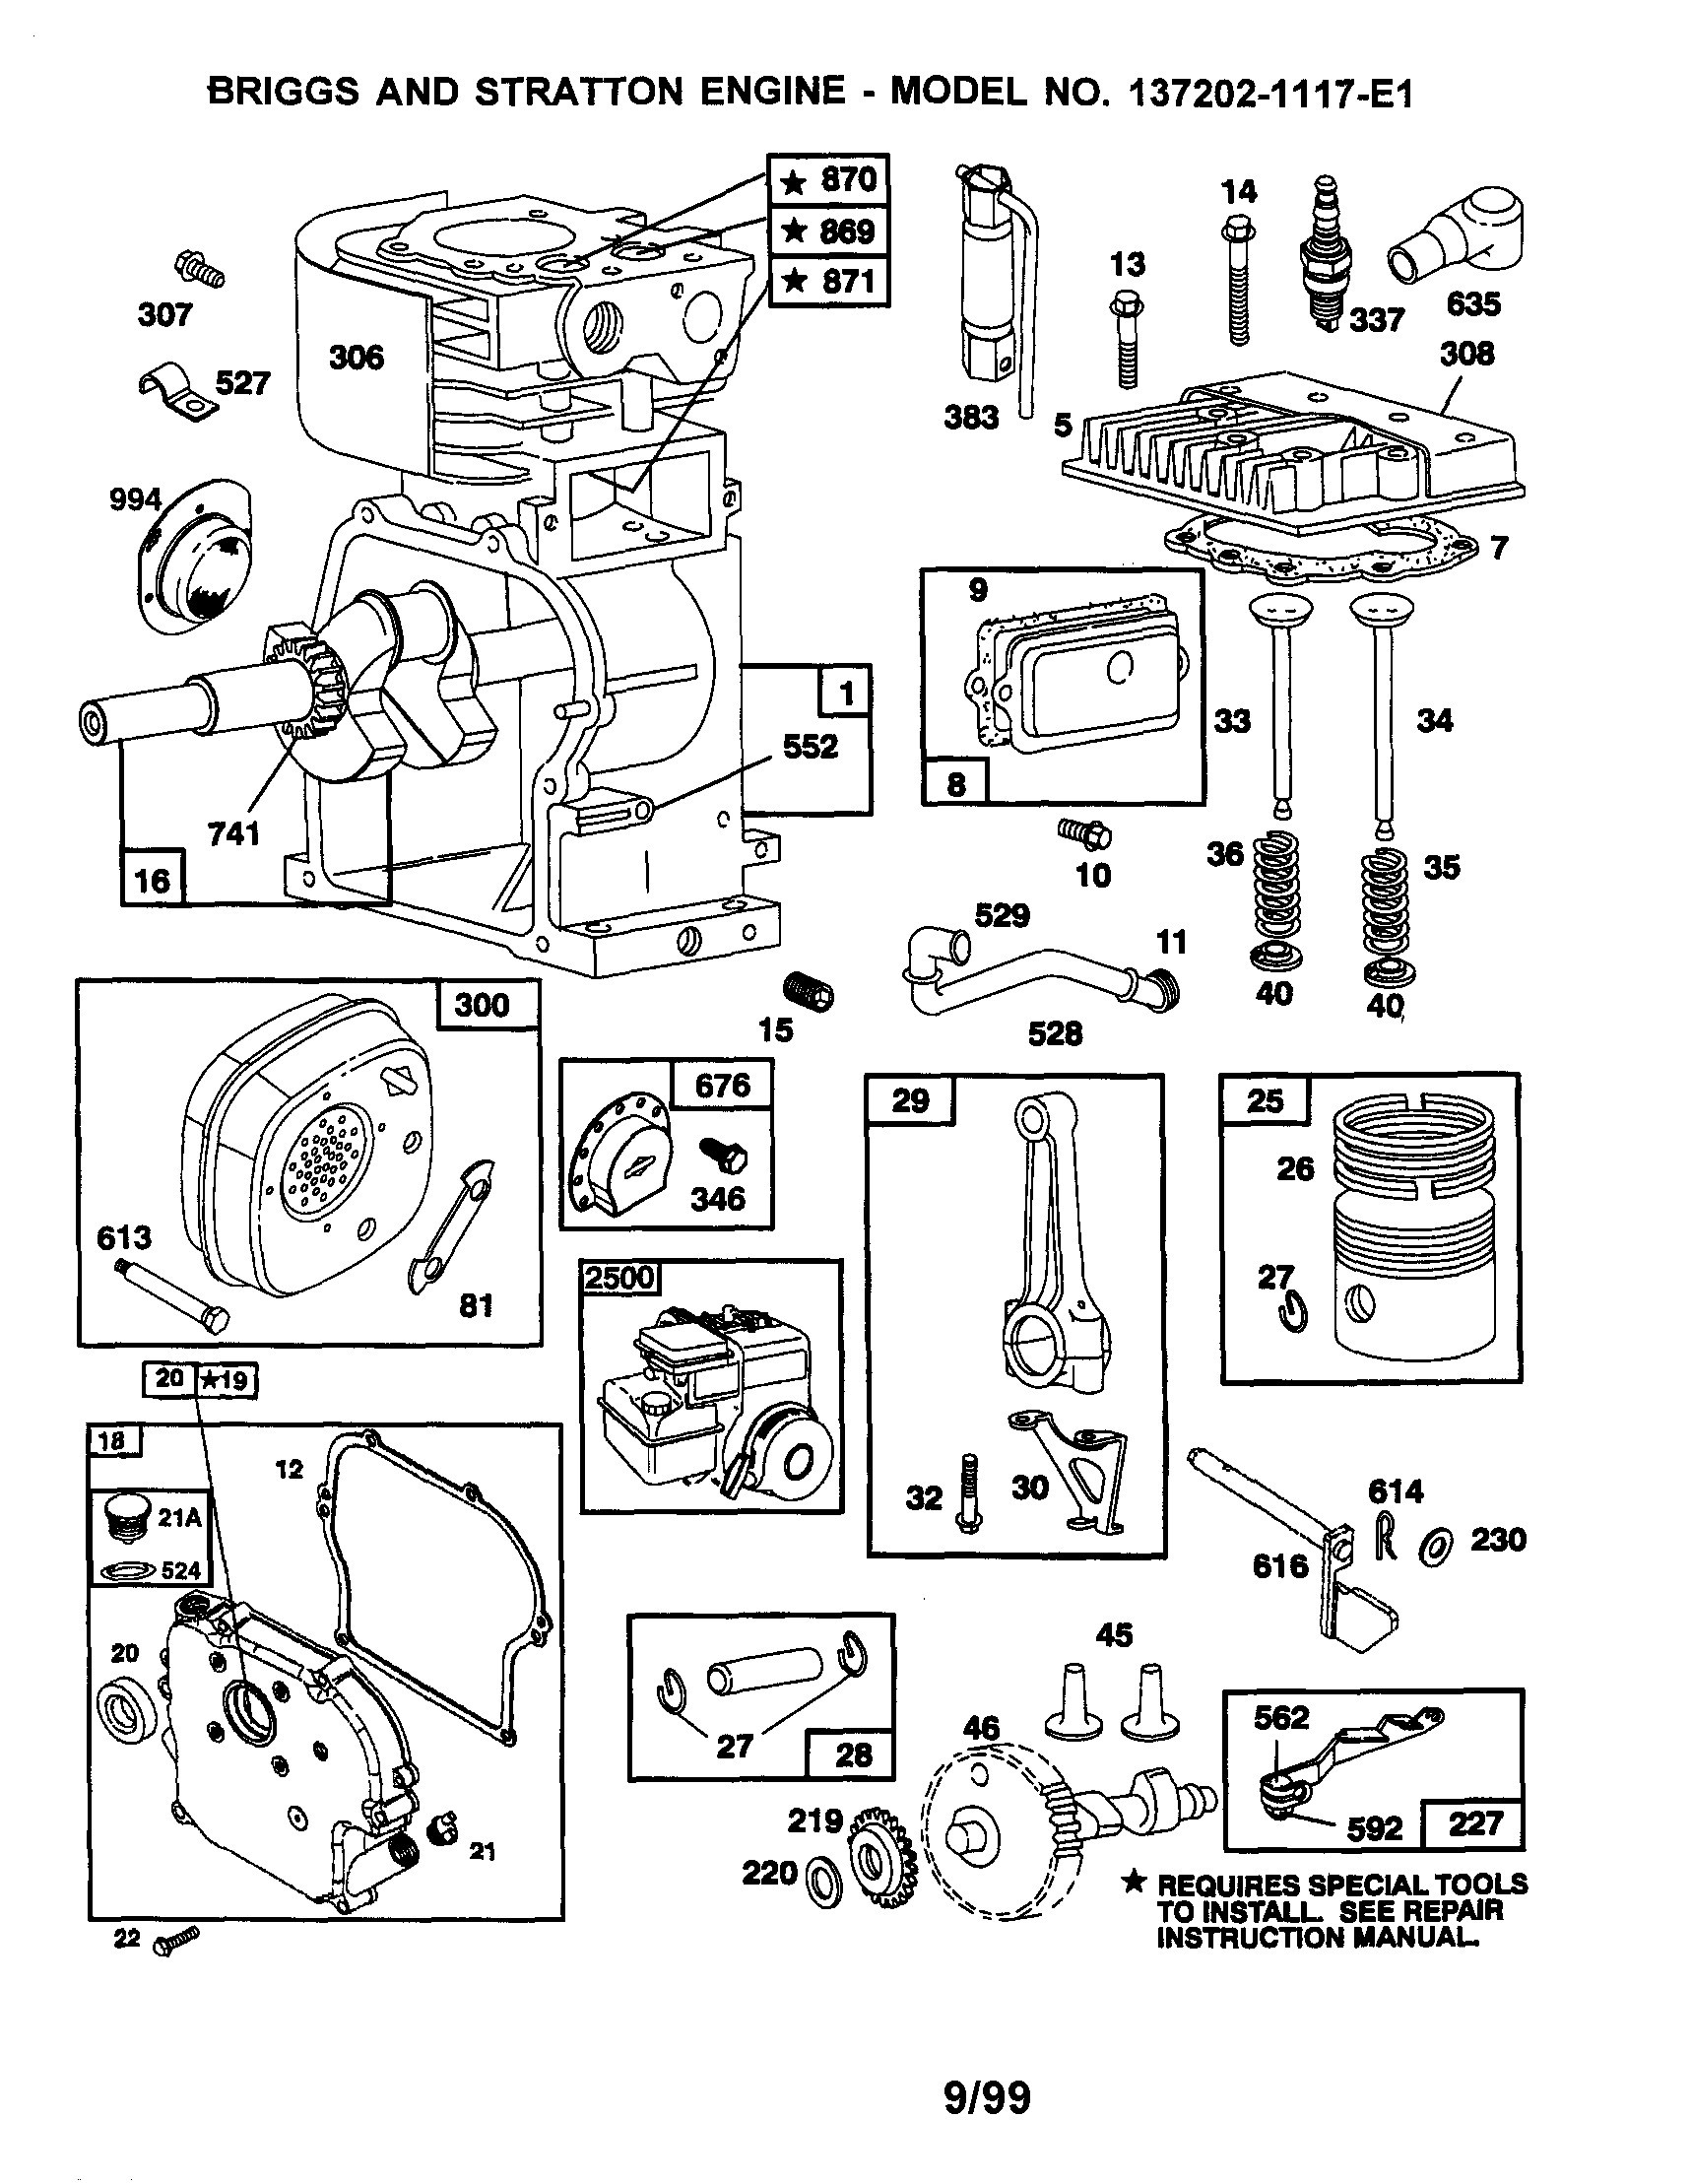 Diagram Of Briggs and Stratton Lawn Mower Engine Magnificent Briggs and Stratton Engine Parts Breakdown Of Diagram Of Briggs and Stratton Lawn Mower Engine